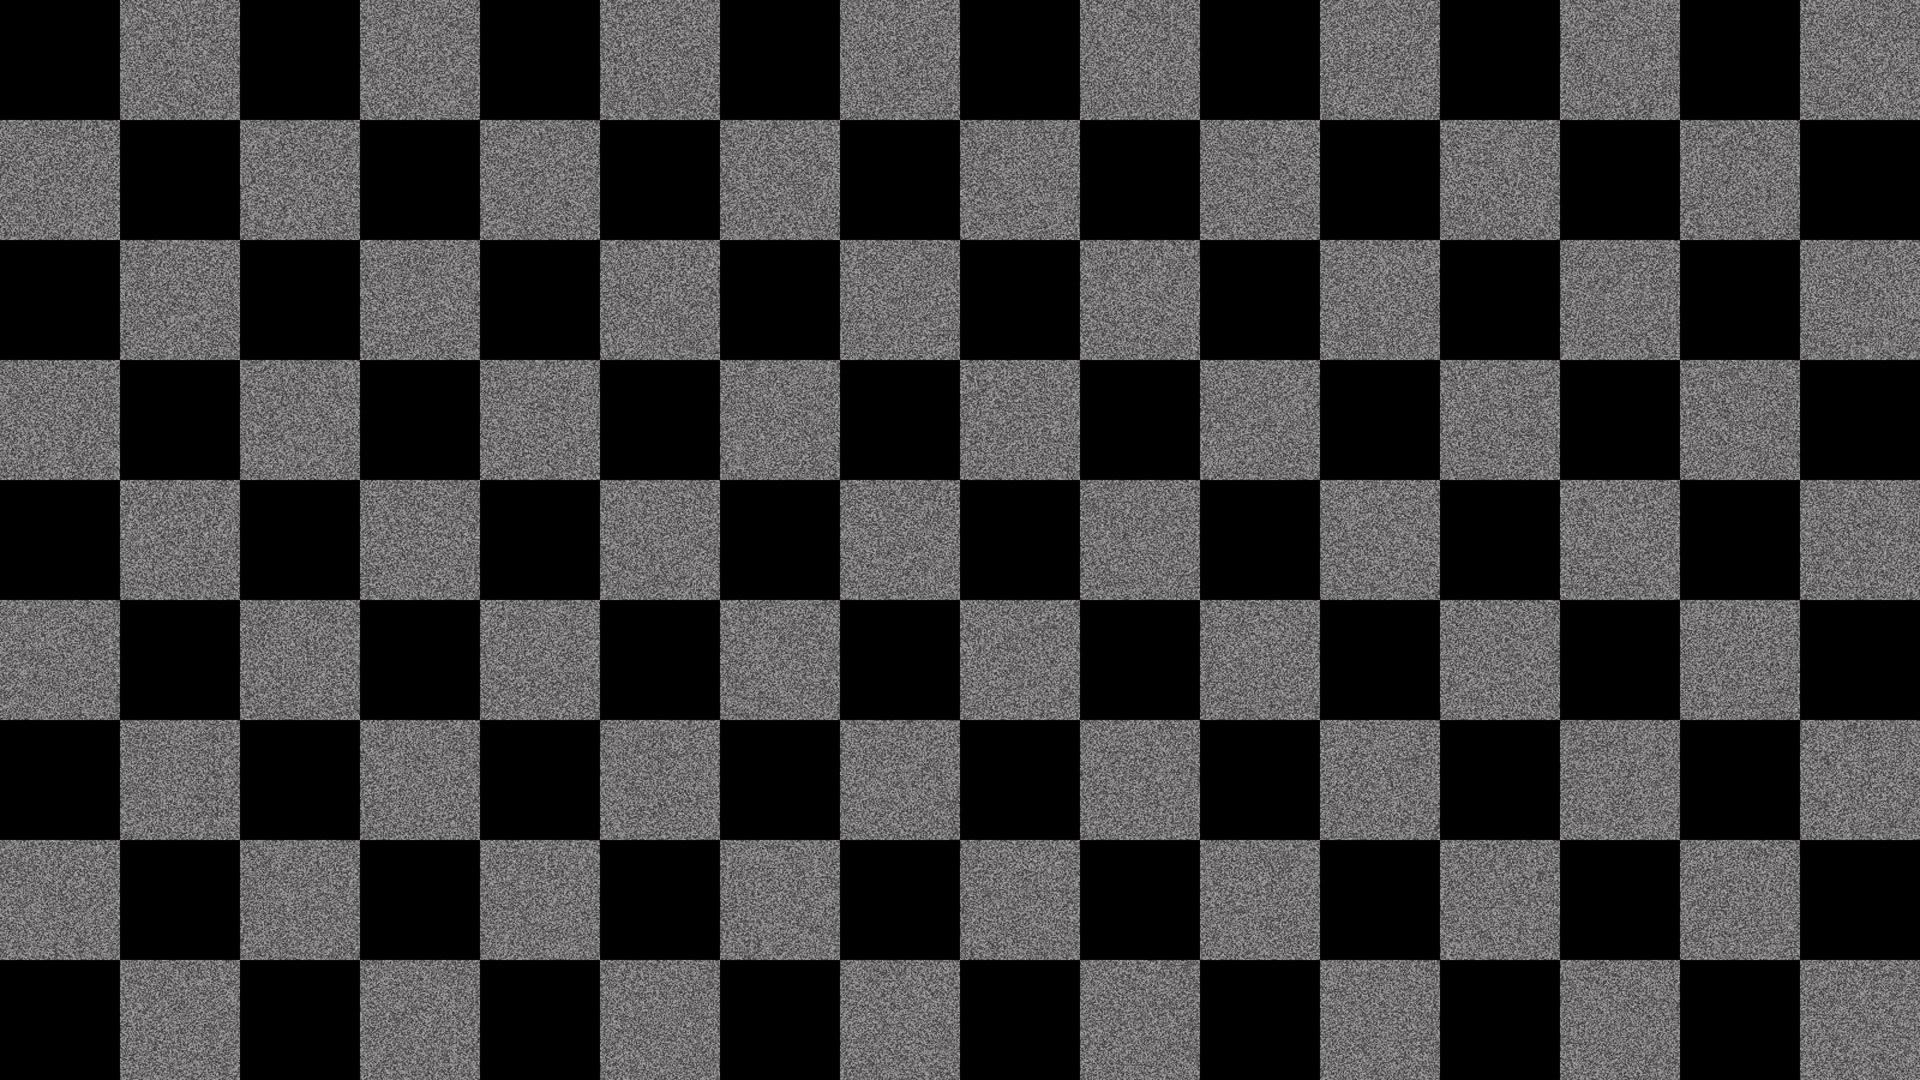 Checkered hd desktop wallpaper